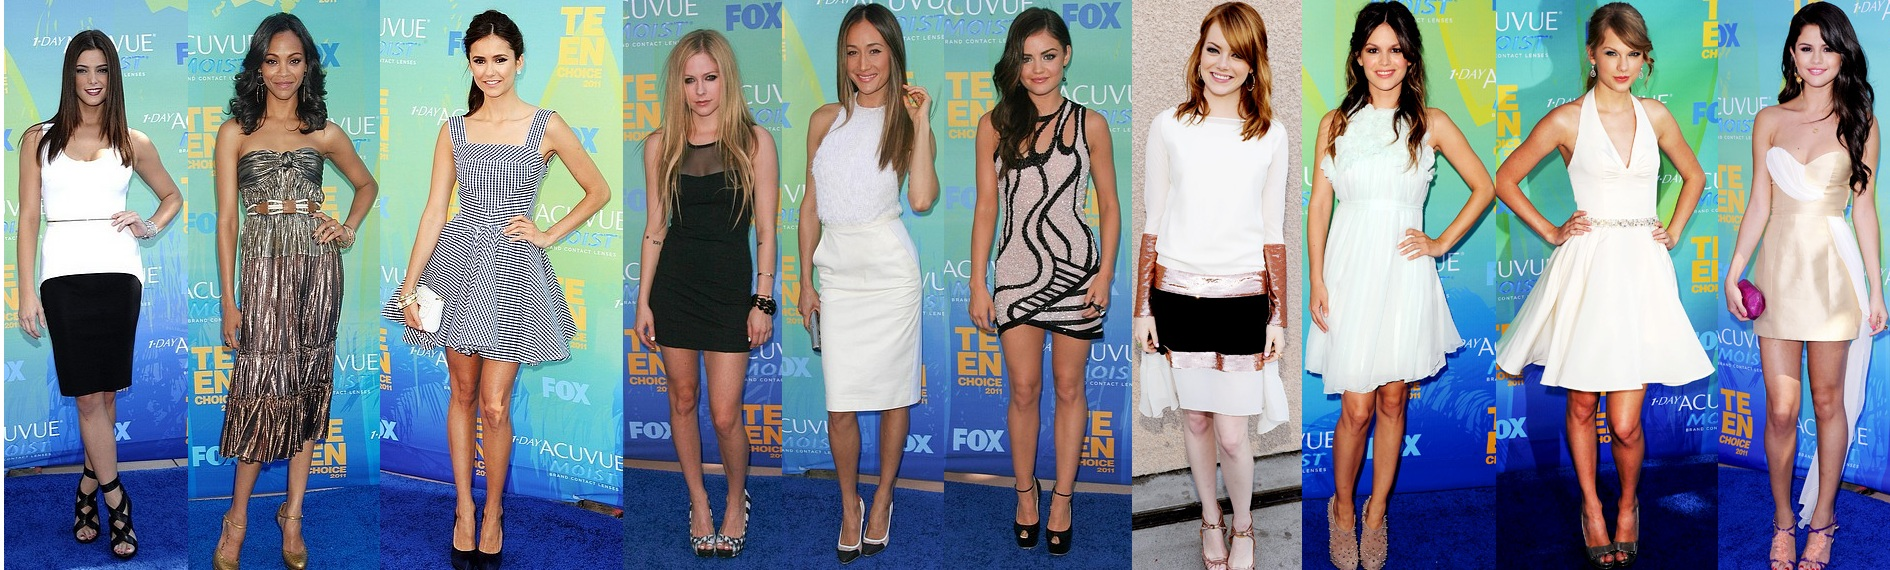 ... of Ashley Greene Zoe Saldana Nina Dobrev Avril Lavigne Maggie Lucy